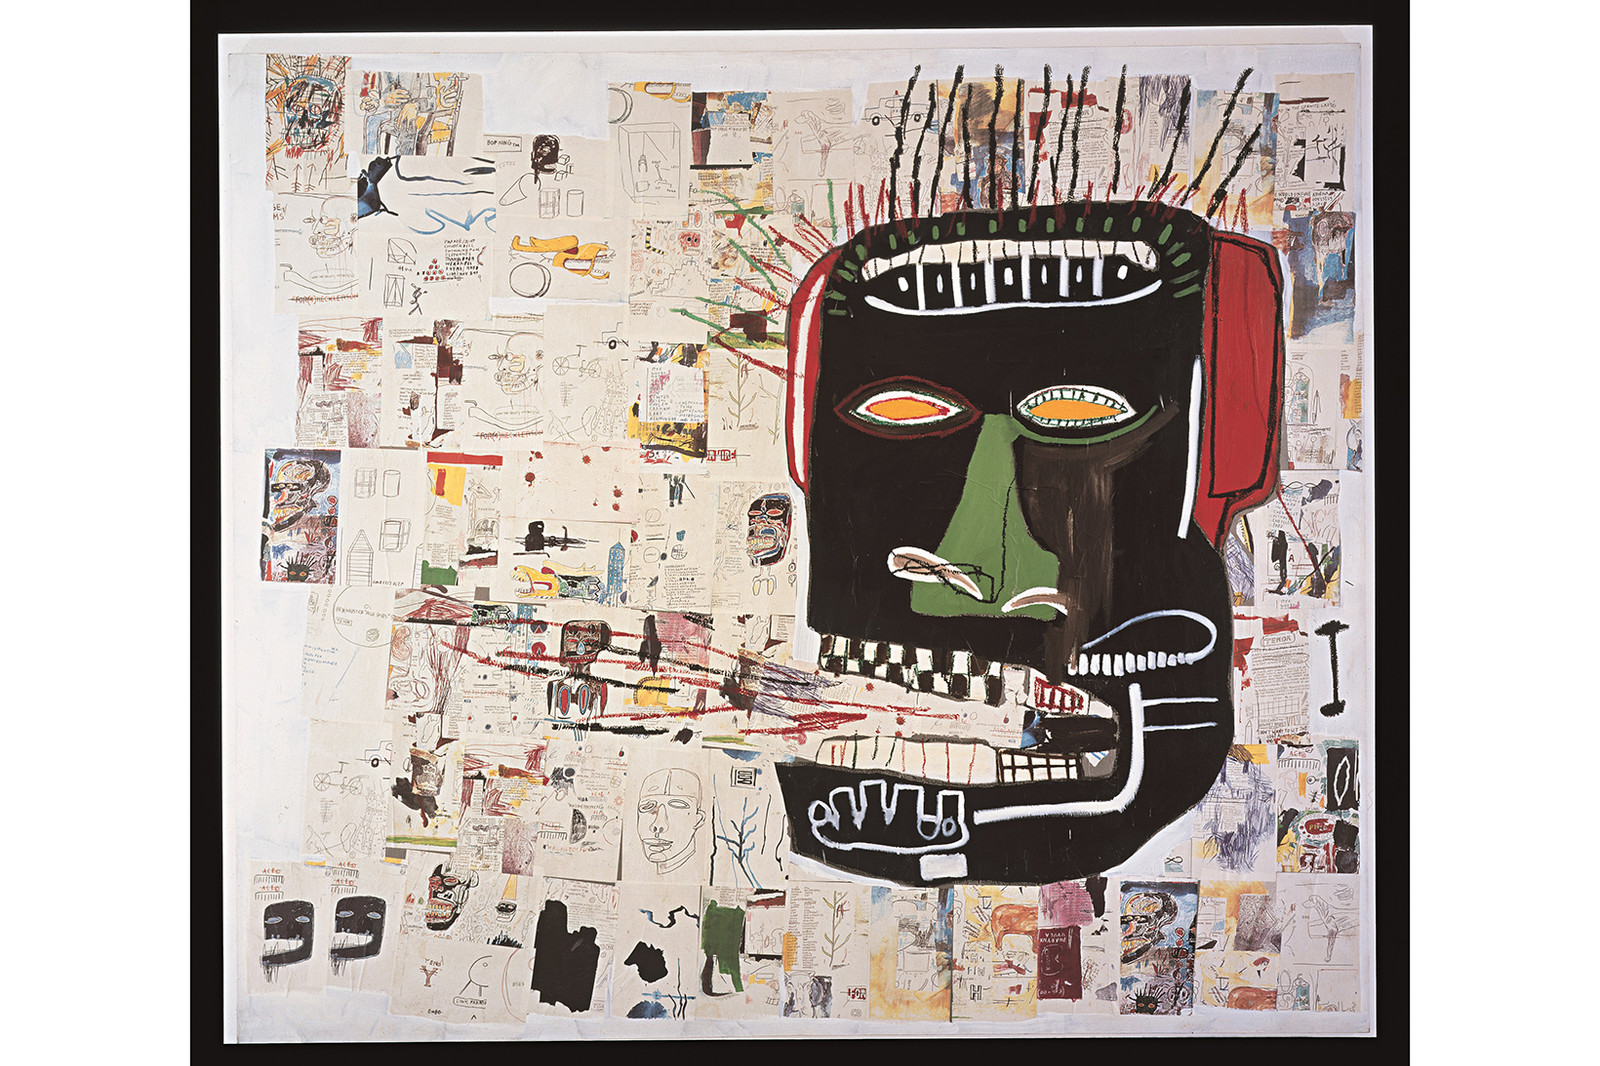 Jean-Michel Basquiat Al Diaz Eleanor Nairne Barbican Boom for Real Yusaku Maezawa Art Exhibition Interviews